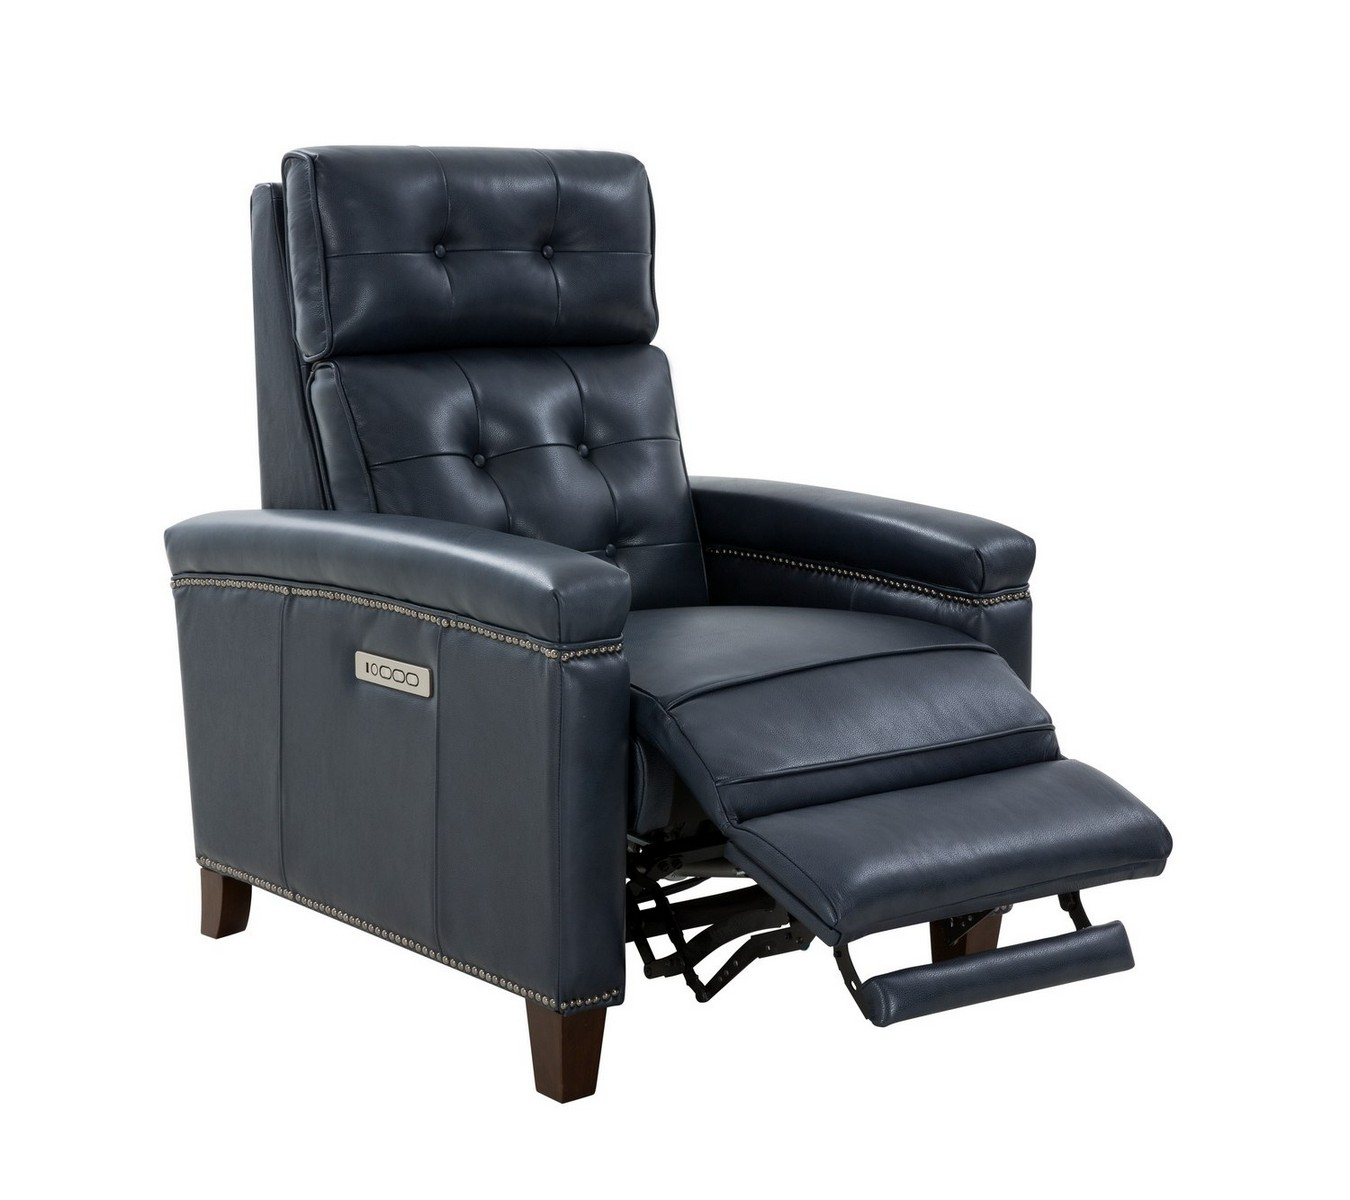 Barcalounger Jamey Zero Gravity Power Recliner Chair with Power Head Rest and Lumbar - Barone Navy Blue/All Leather